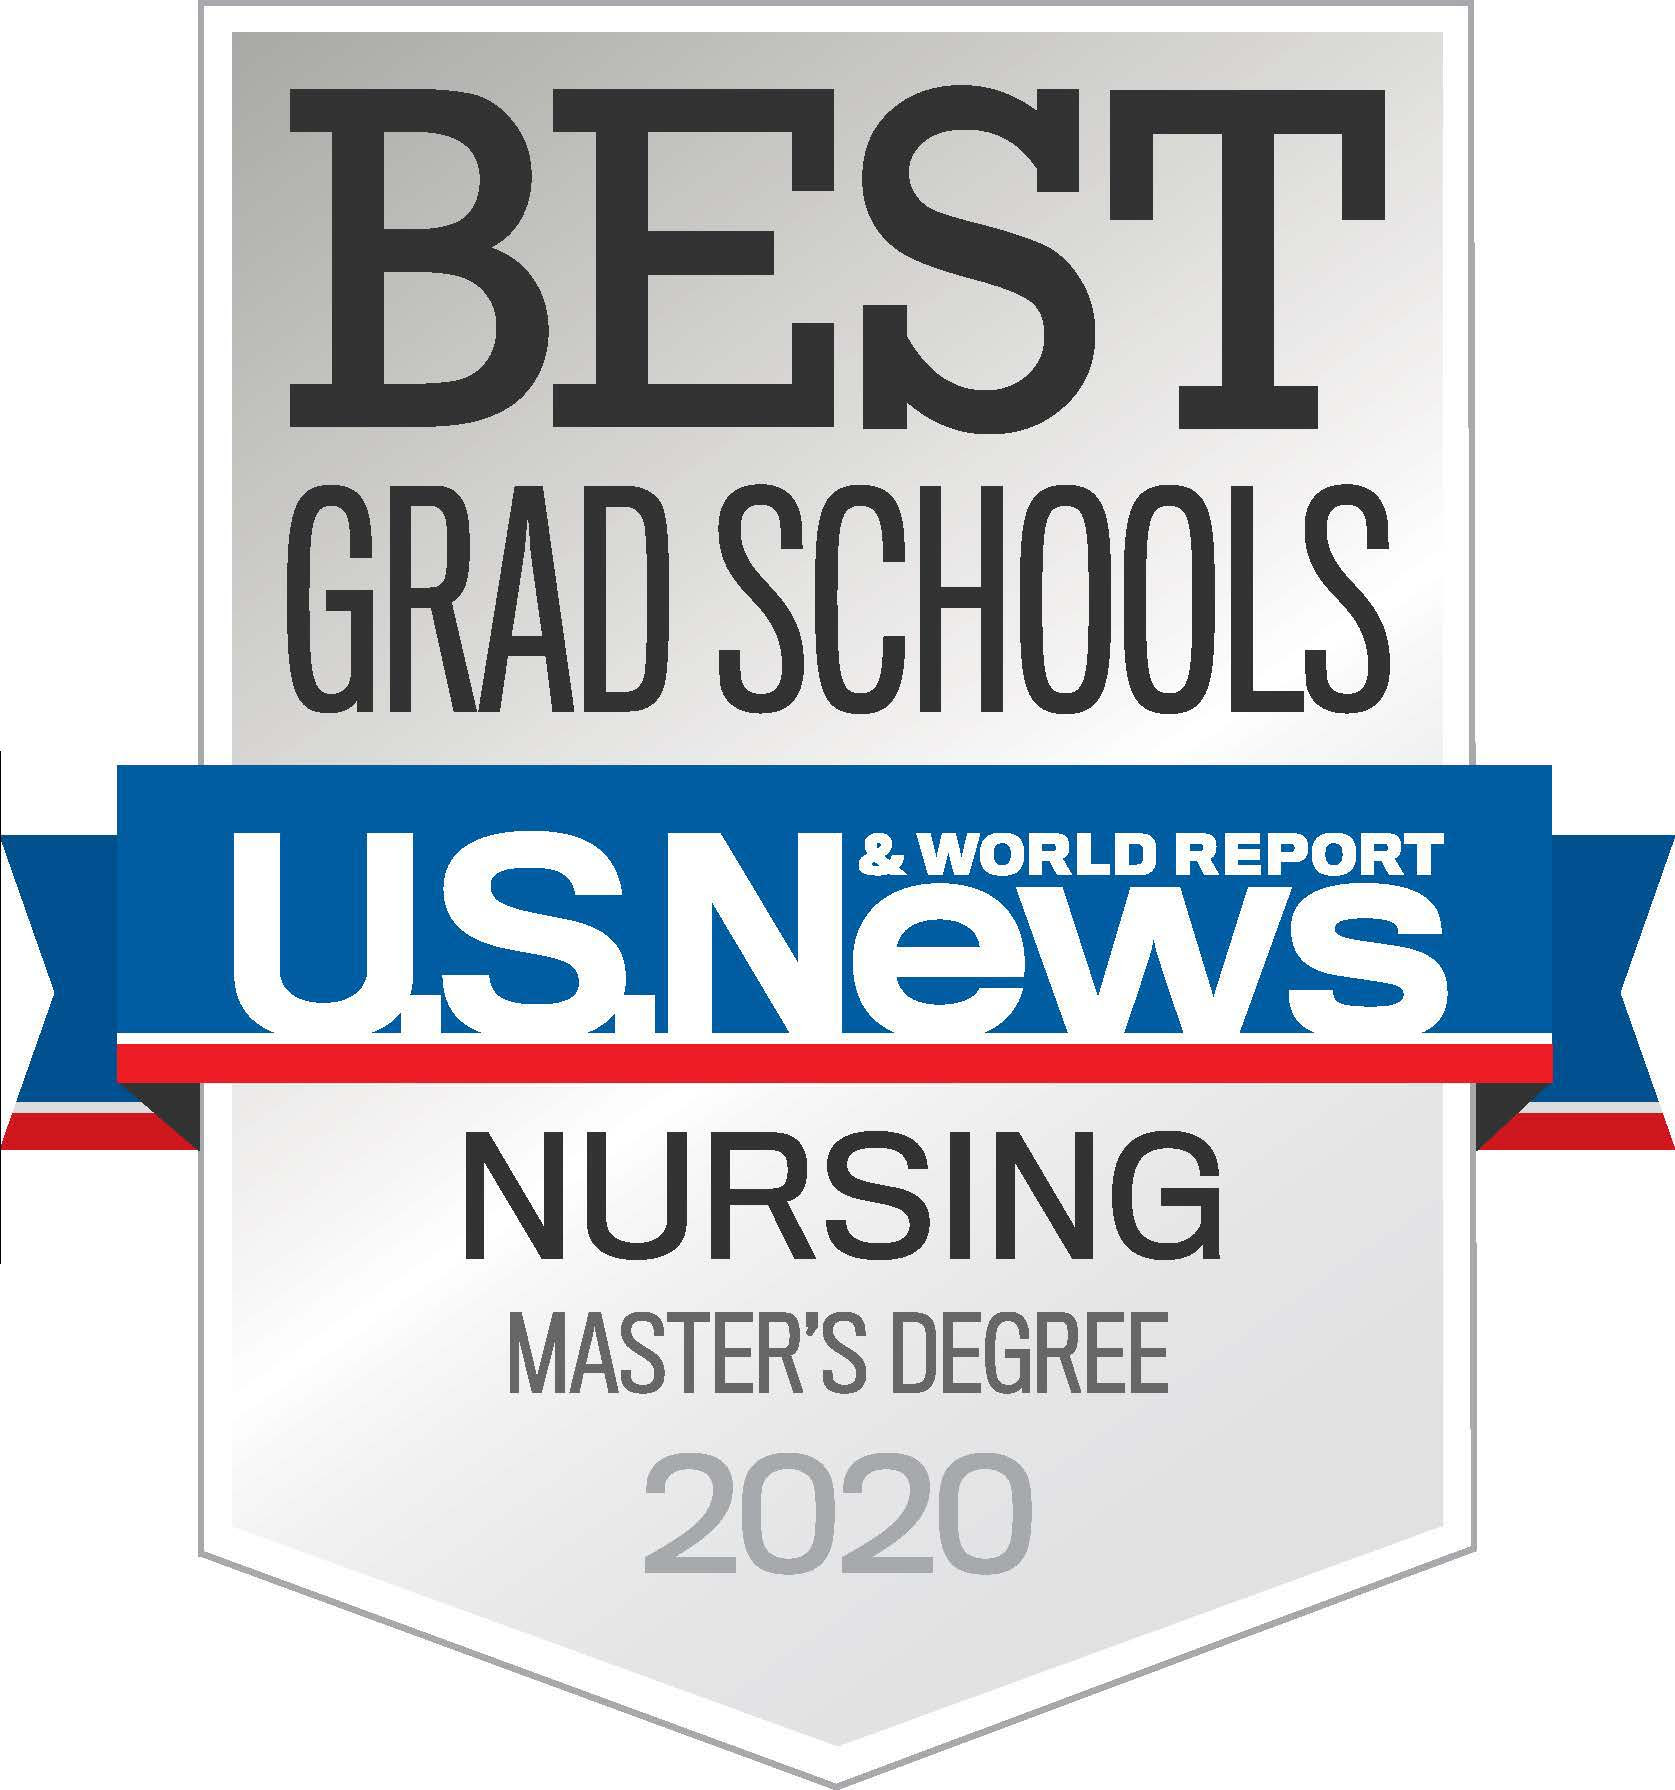 Best Grad Schools - US News & World Report - Nursing Master's Degree 2020